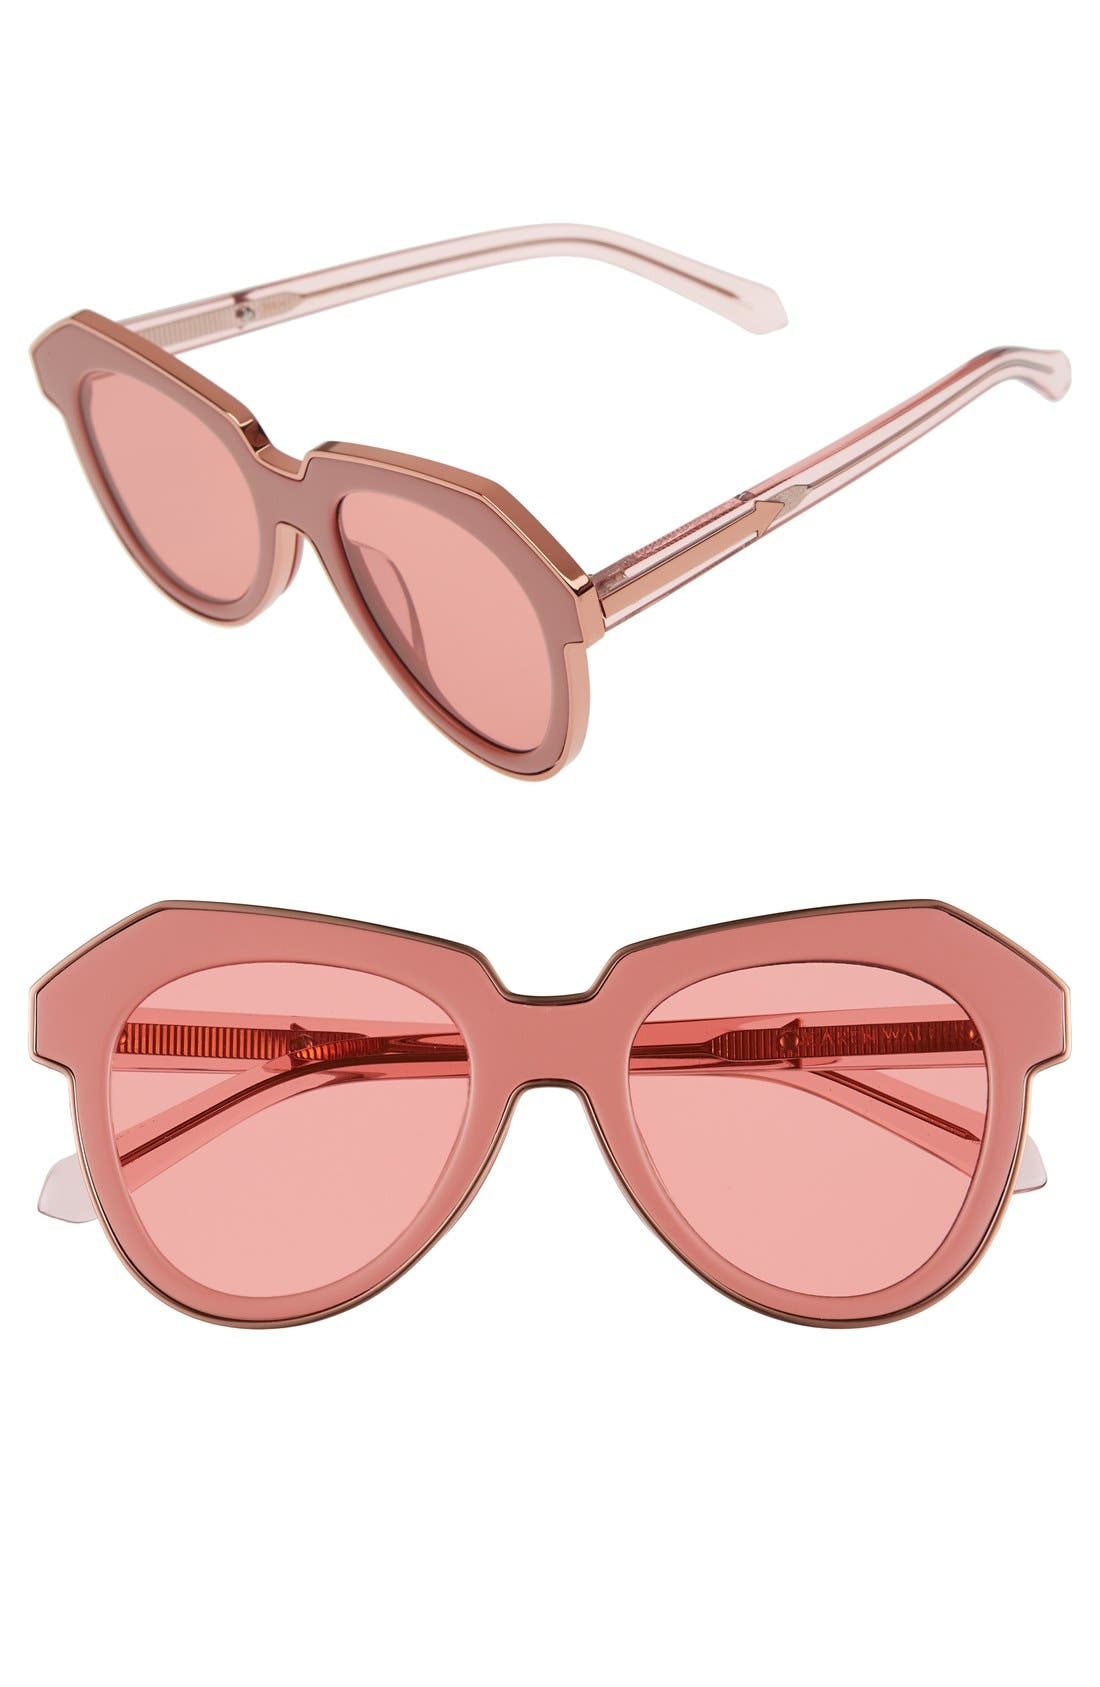 'One Astronaut - Arrowed by Karen' 49mm Sunglasses,                             Main thumbnail 1, color,                             Crystal Pink/ Rose Pink